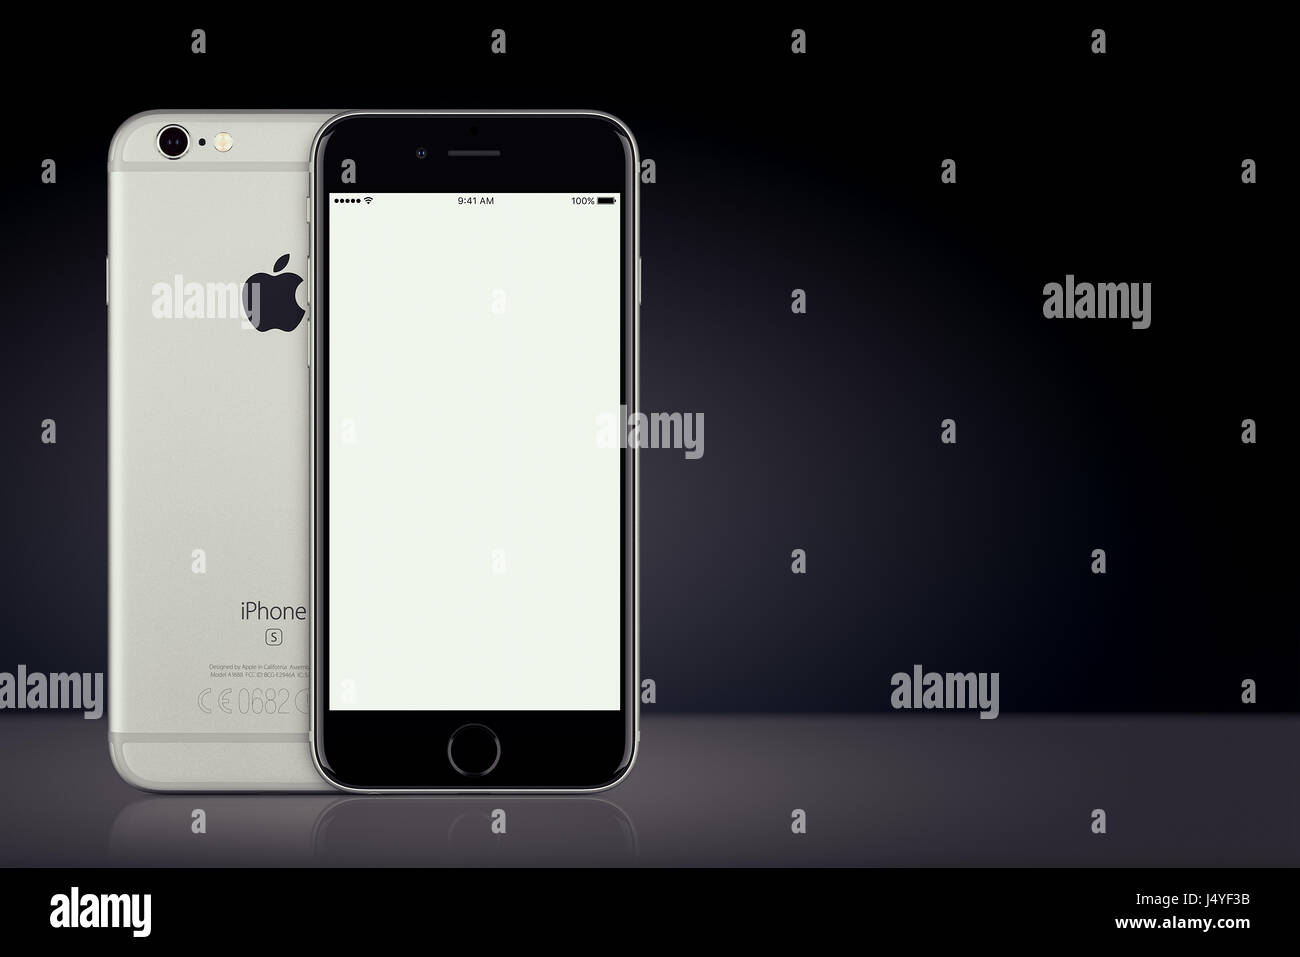 af9eaf0f548 Space Gray Apple iPhone 7 mockup front and back side on dark background  with copy space